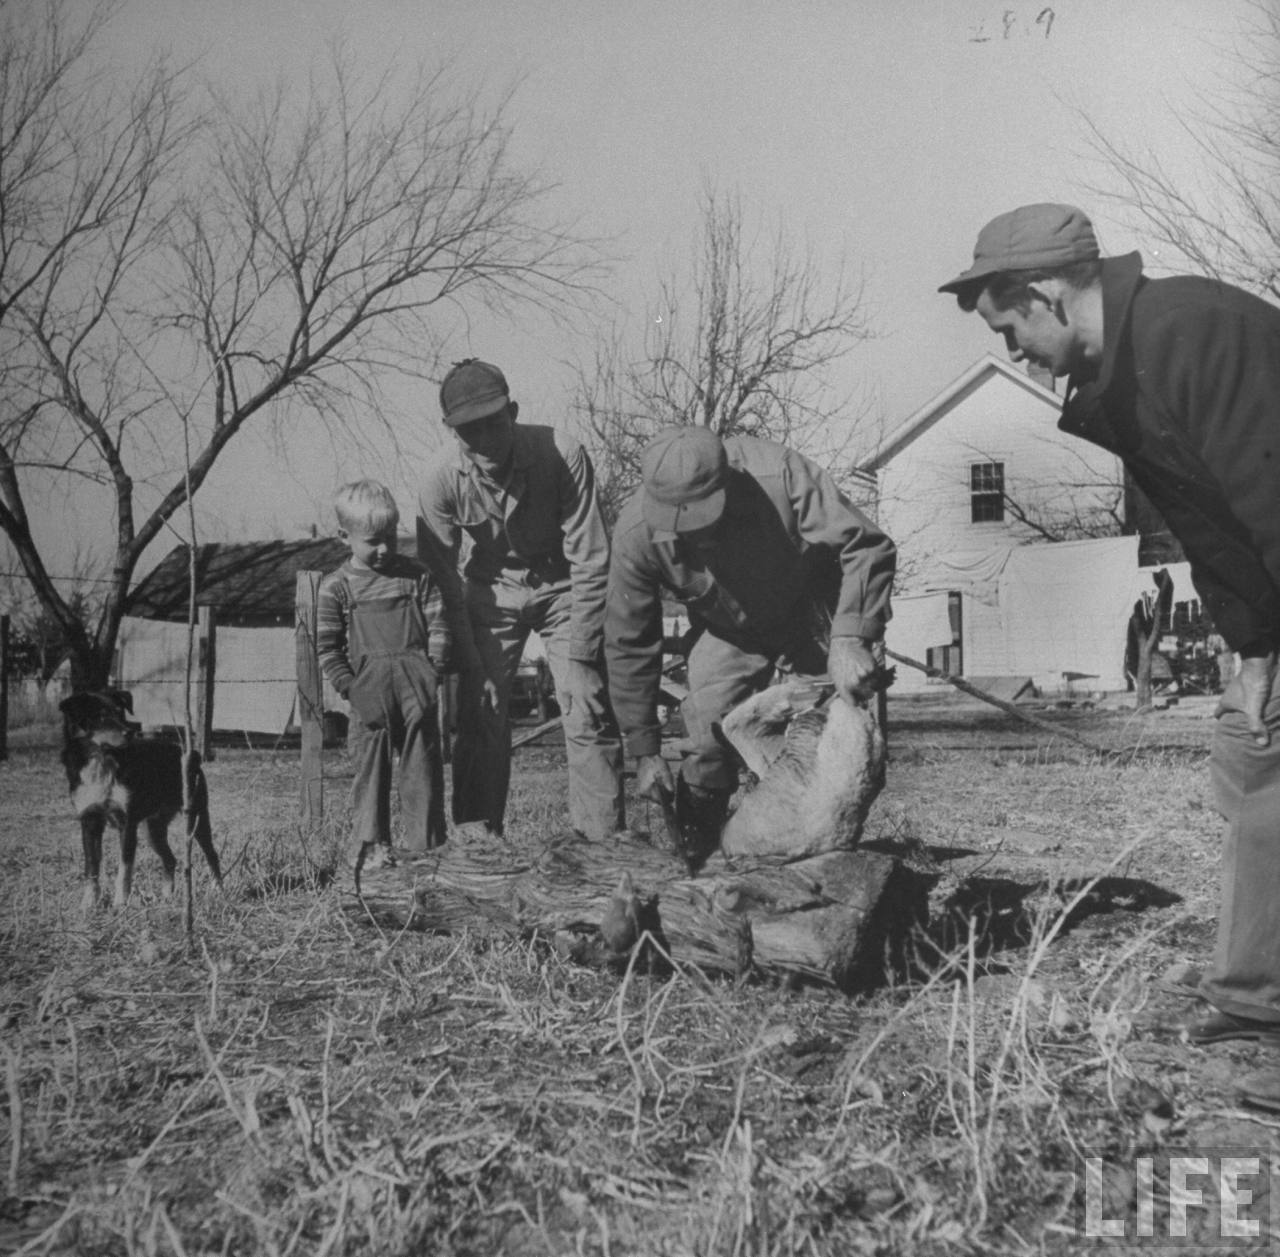 Family members watching James F. Irwin (C) killing a goose for an early Christmas dinner to celebrate safe return of sons and sons-in-law from WW II.© Time Inc. Myron Davis